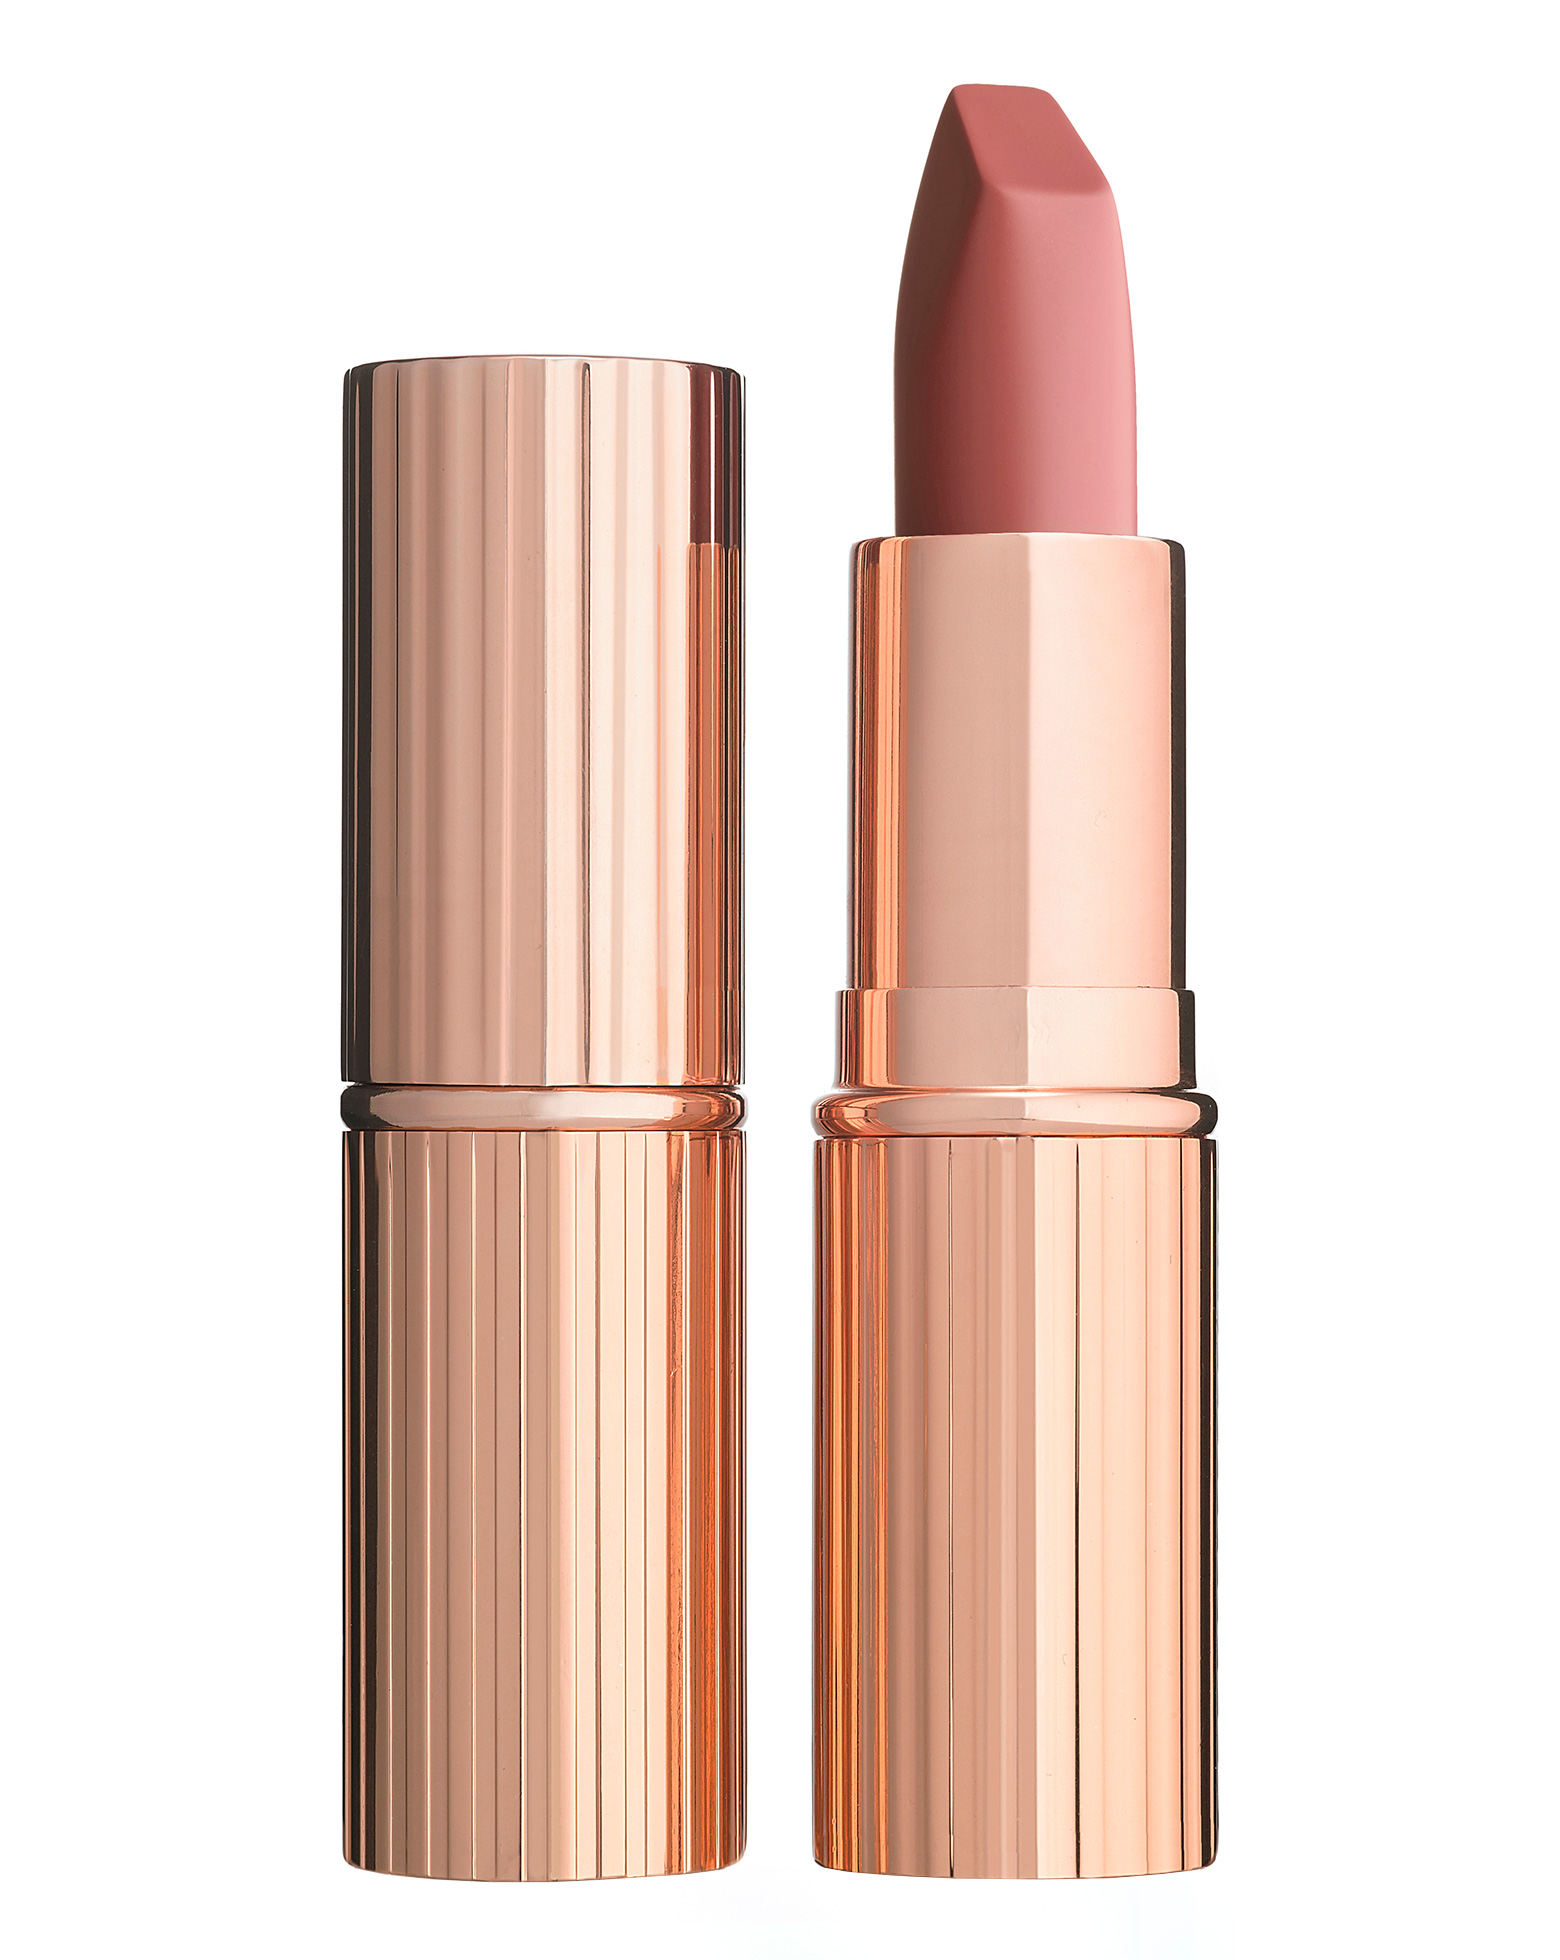 Charlotte Tilbury | Pillow Talk Lipstick